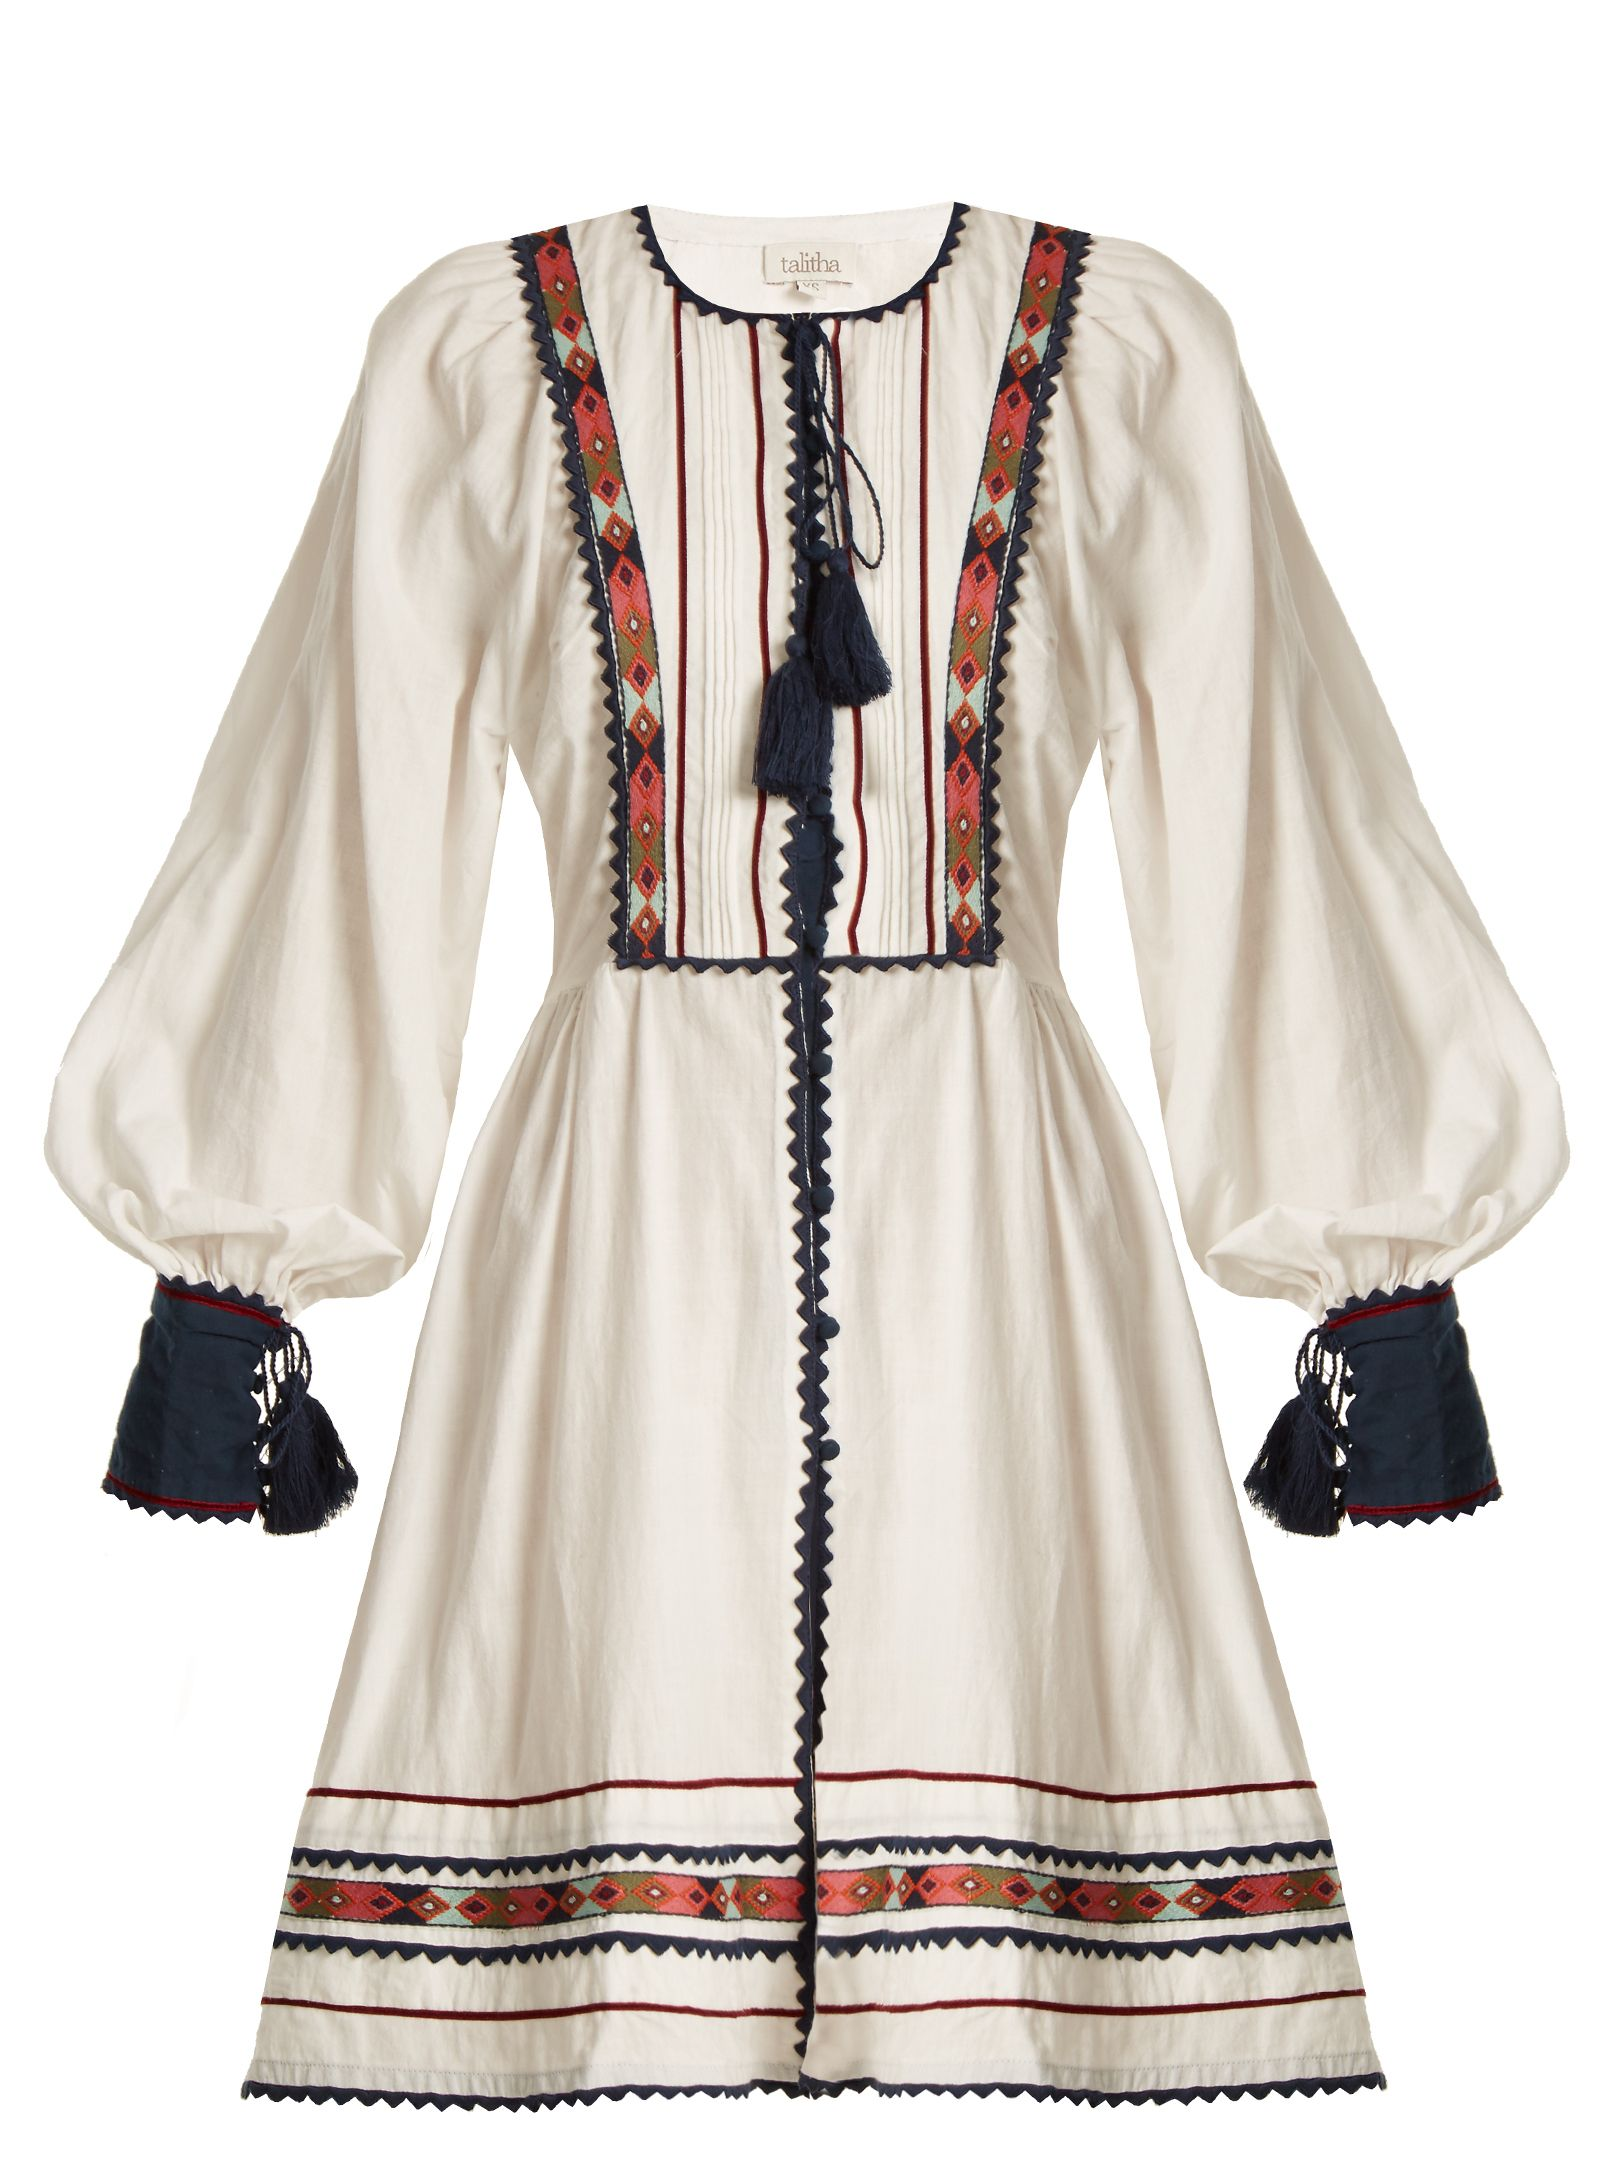 66a033004e7 Embody the nomadic aesthetic of Talitha with this white zoya-embroidered  Athena dress. It s crafted from breathable cotton that s shaped to a slim  ...